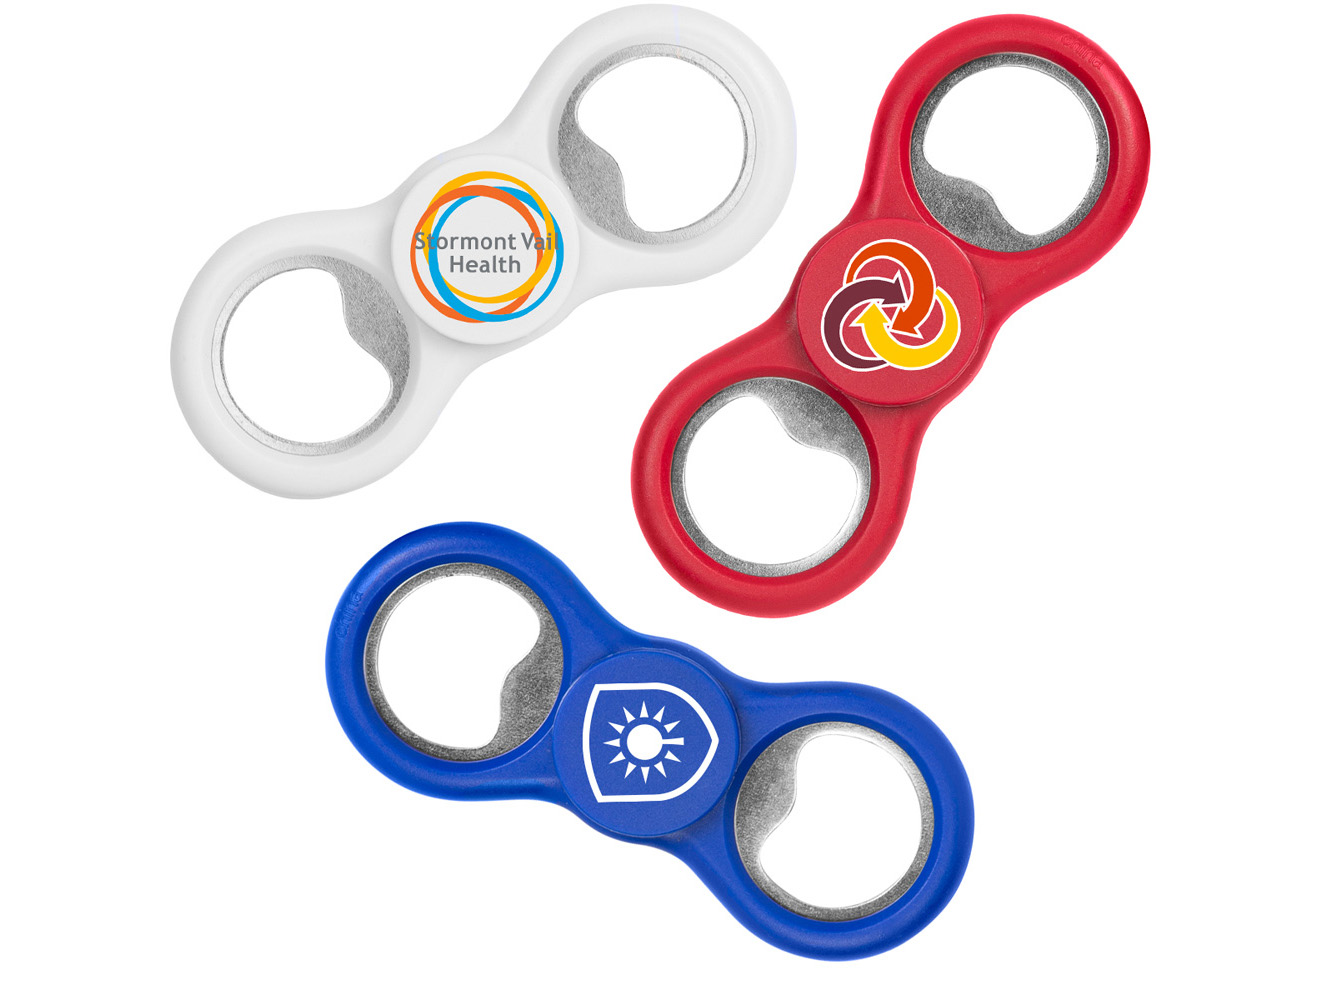 FS2: Fidget Spinner Bottle Opener